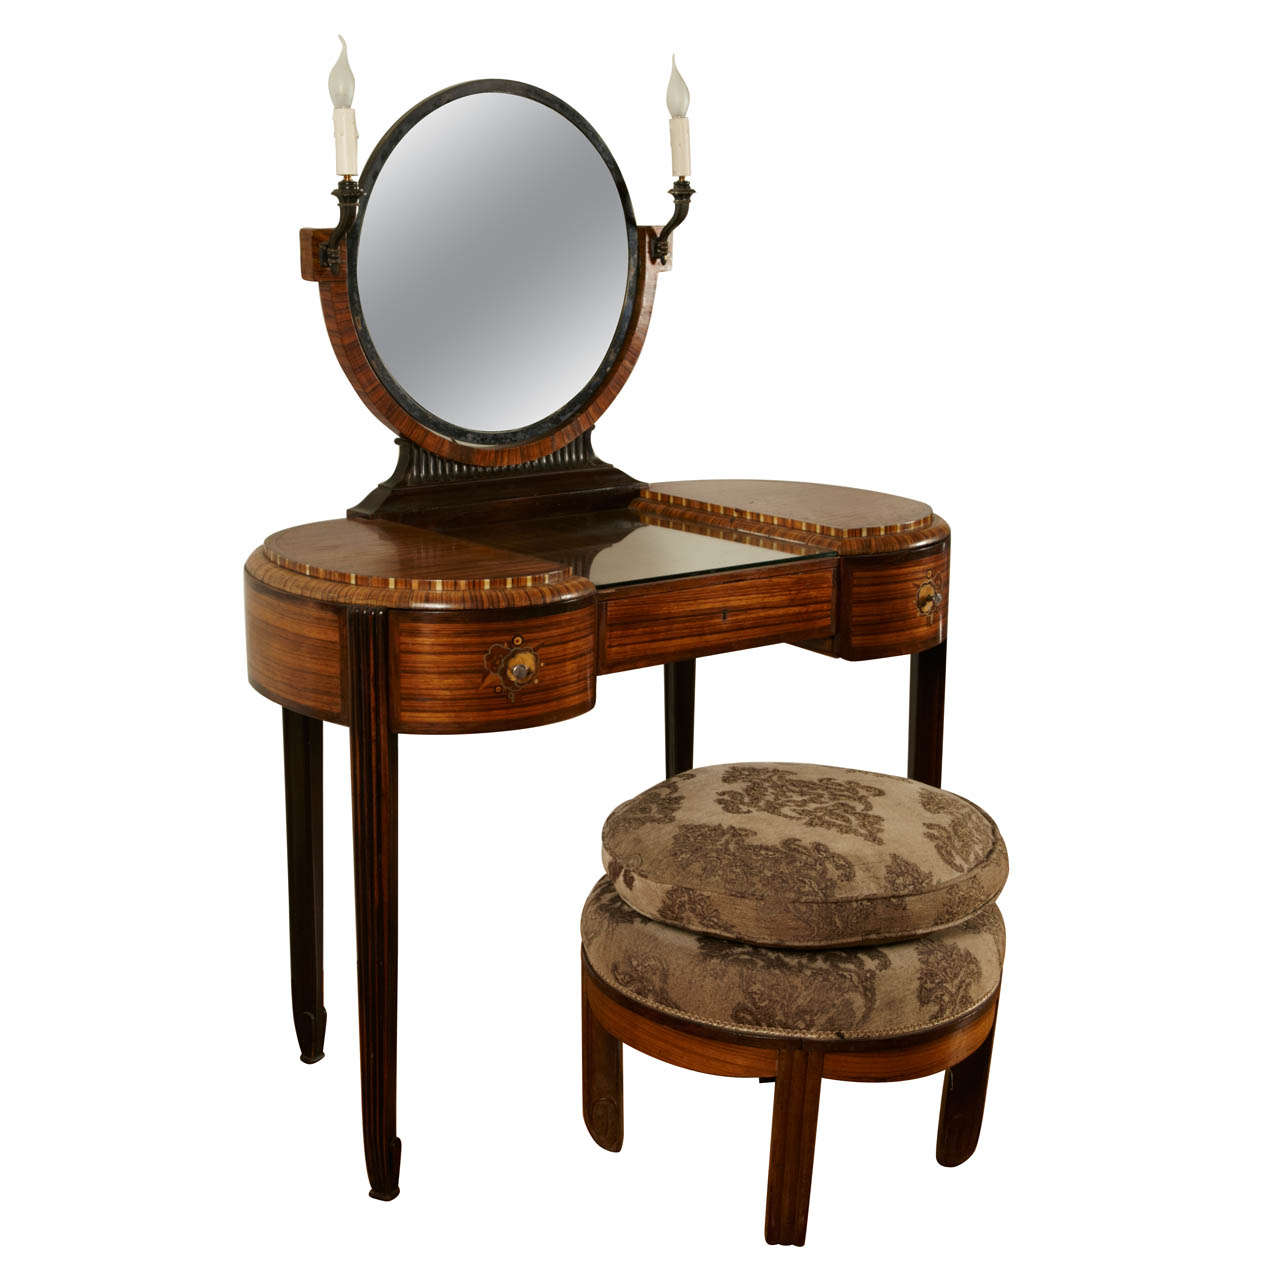 Art deco dressing table with stool by krieger circa 1925 for Table dressing